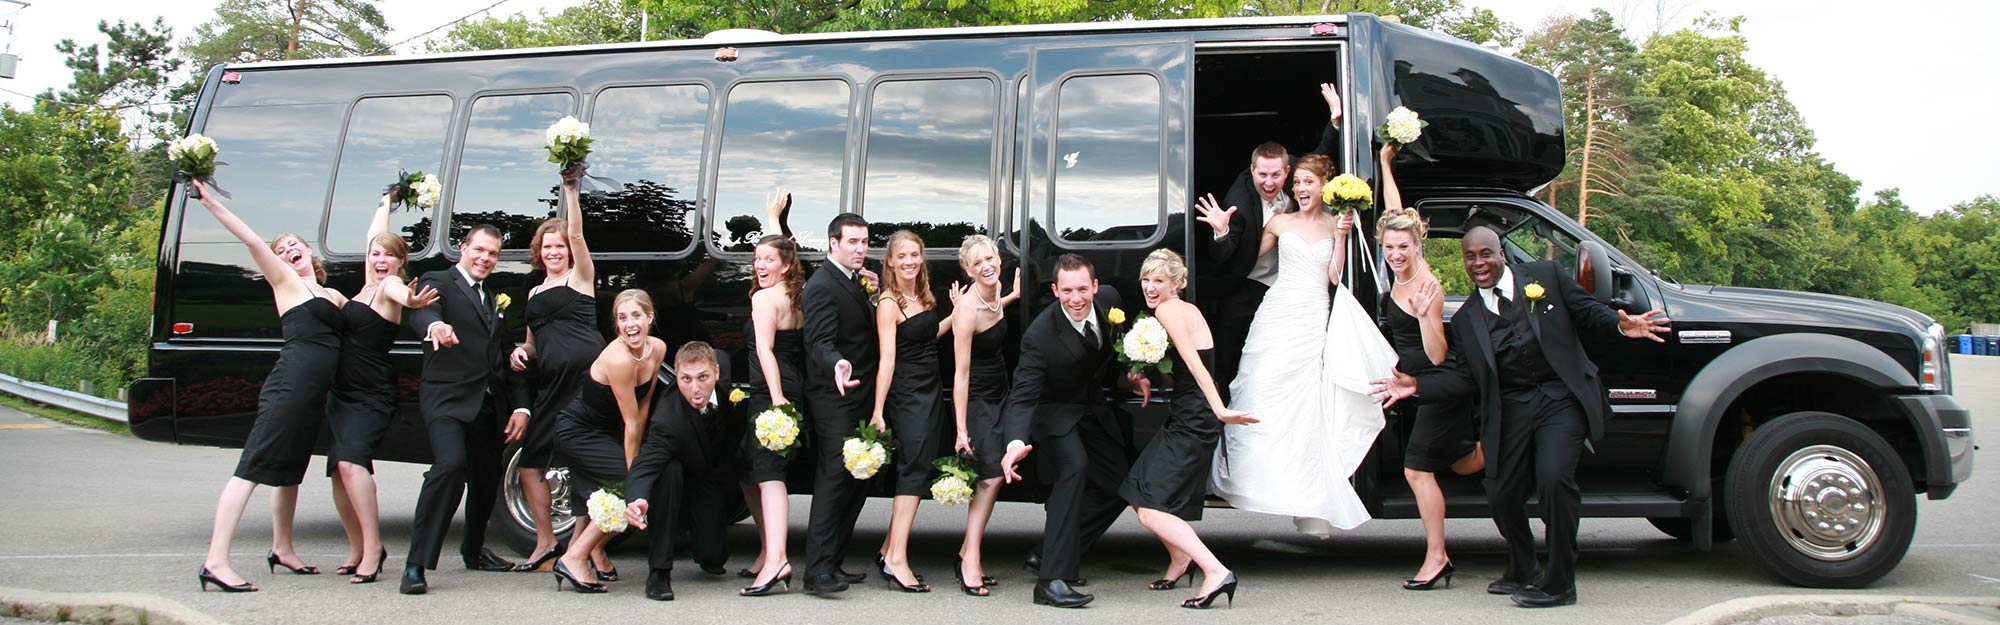 Wedding Limobus Limbusine